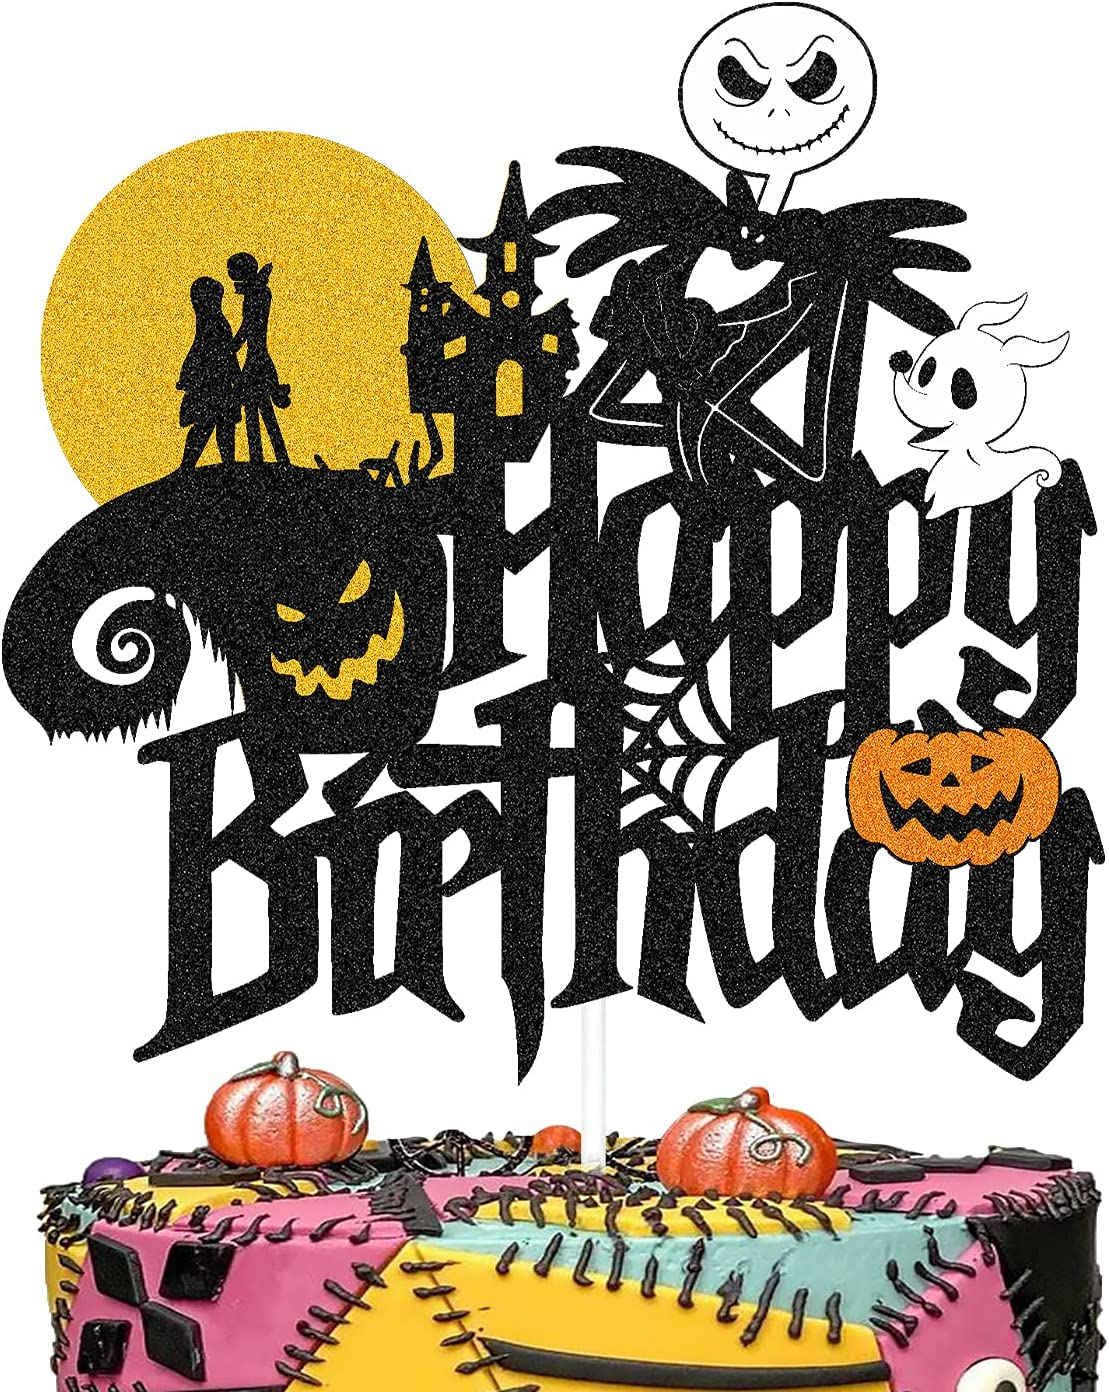 Skull Happy Birthday Cake Topper Decorations for Nightmare-Before-Christmas Cartoon Movie Jack Sally Theme Birthday Party Supplies Double Sided Glitter Black Décor